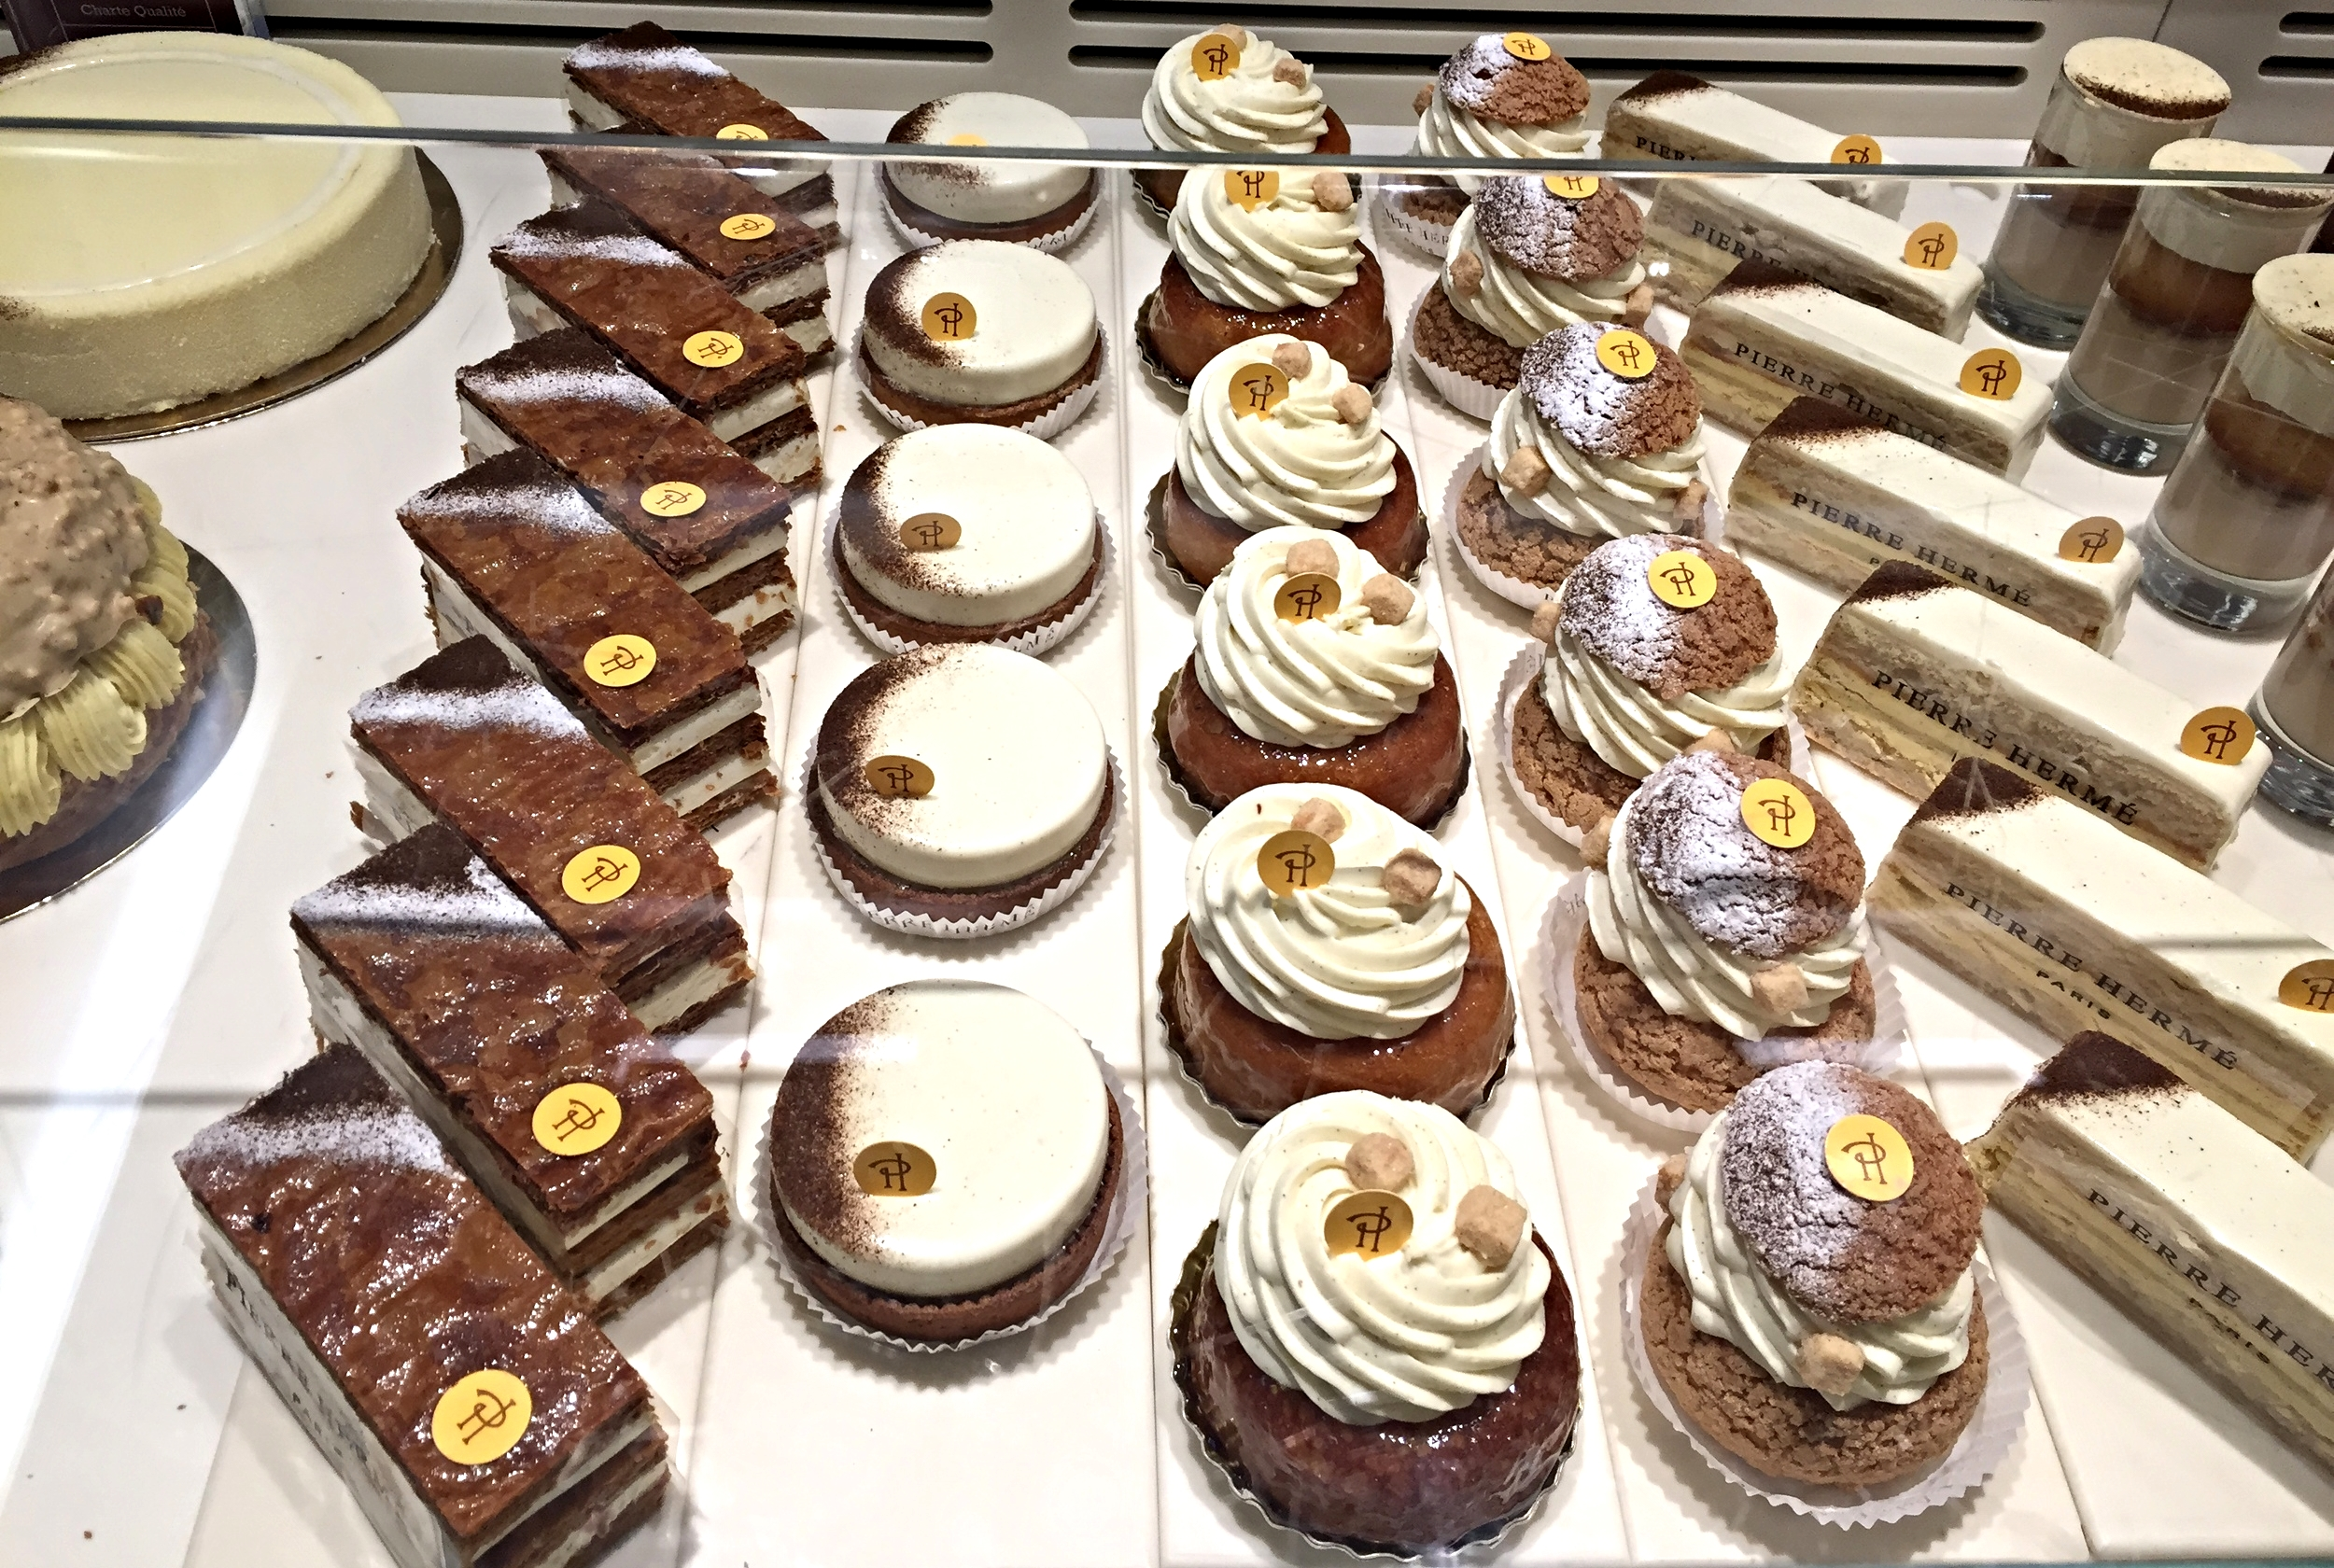 A sample of Pierre Hermé's confections. Do you see the round white tart speckled with vanilla bean second from the left? That's his famous tart infiniment vanille.